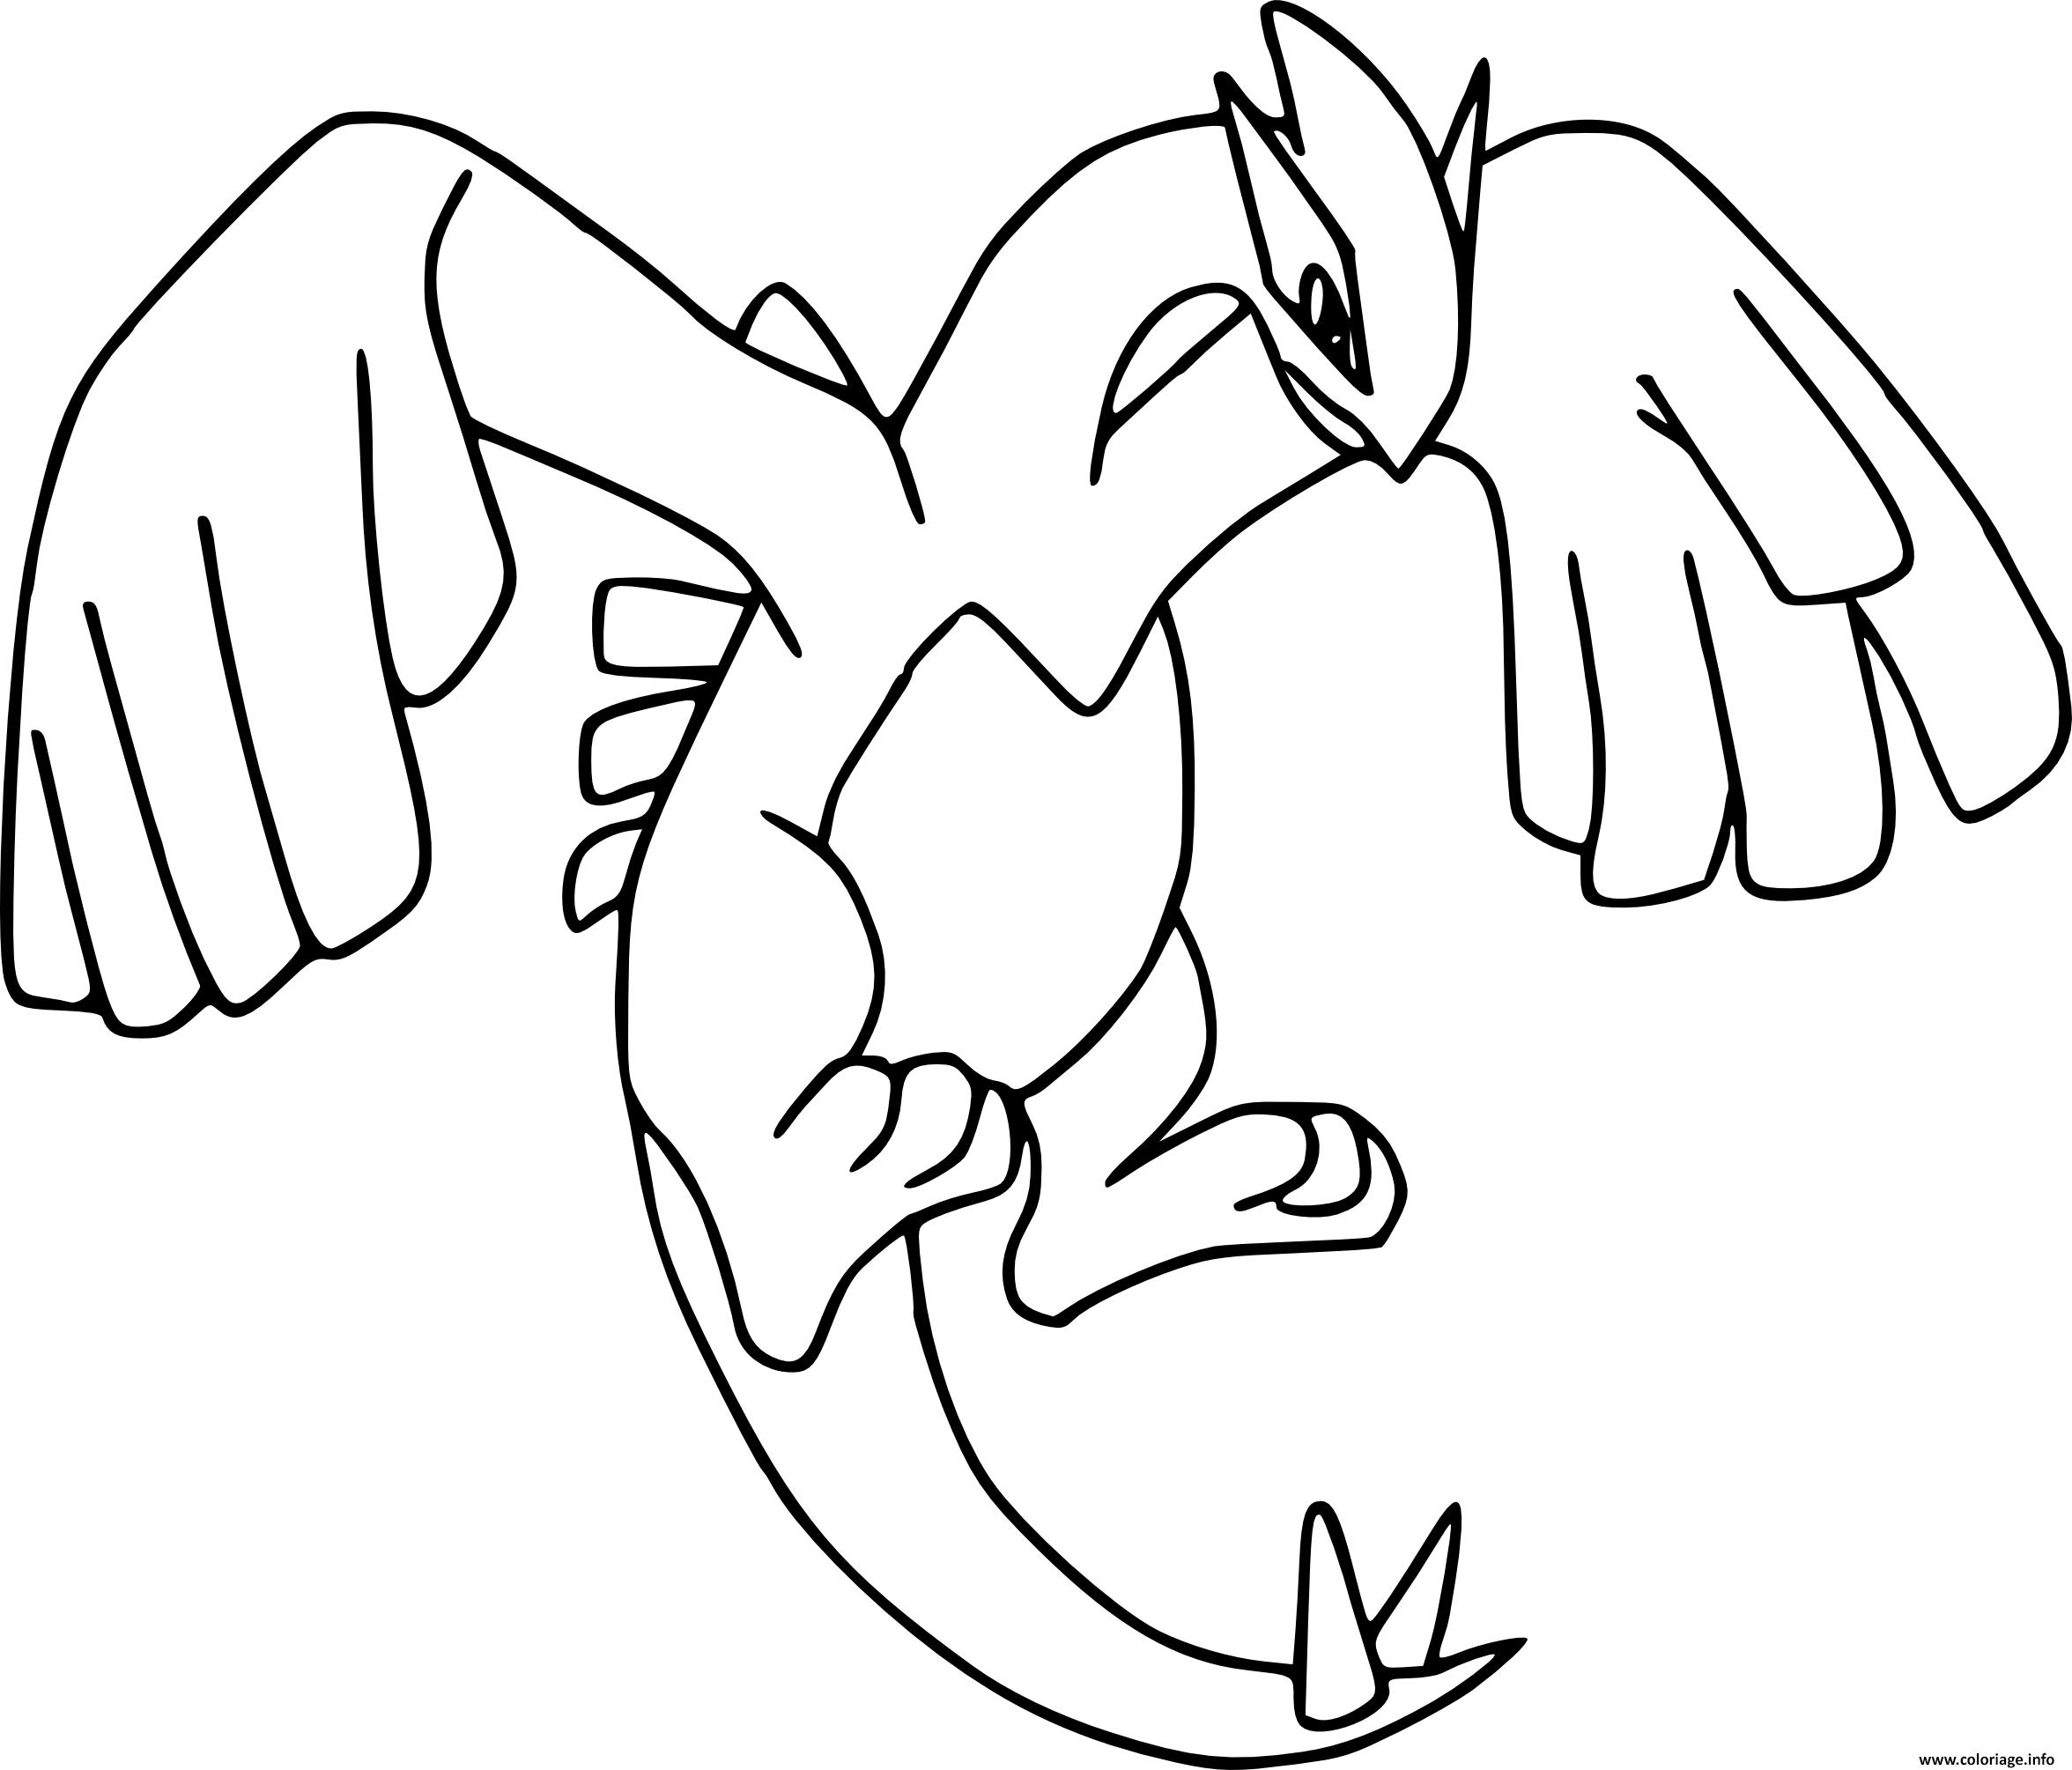 Coloriage pokemon legendaire lugia - Modele dessin pokemon ...